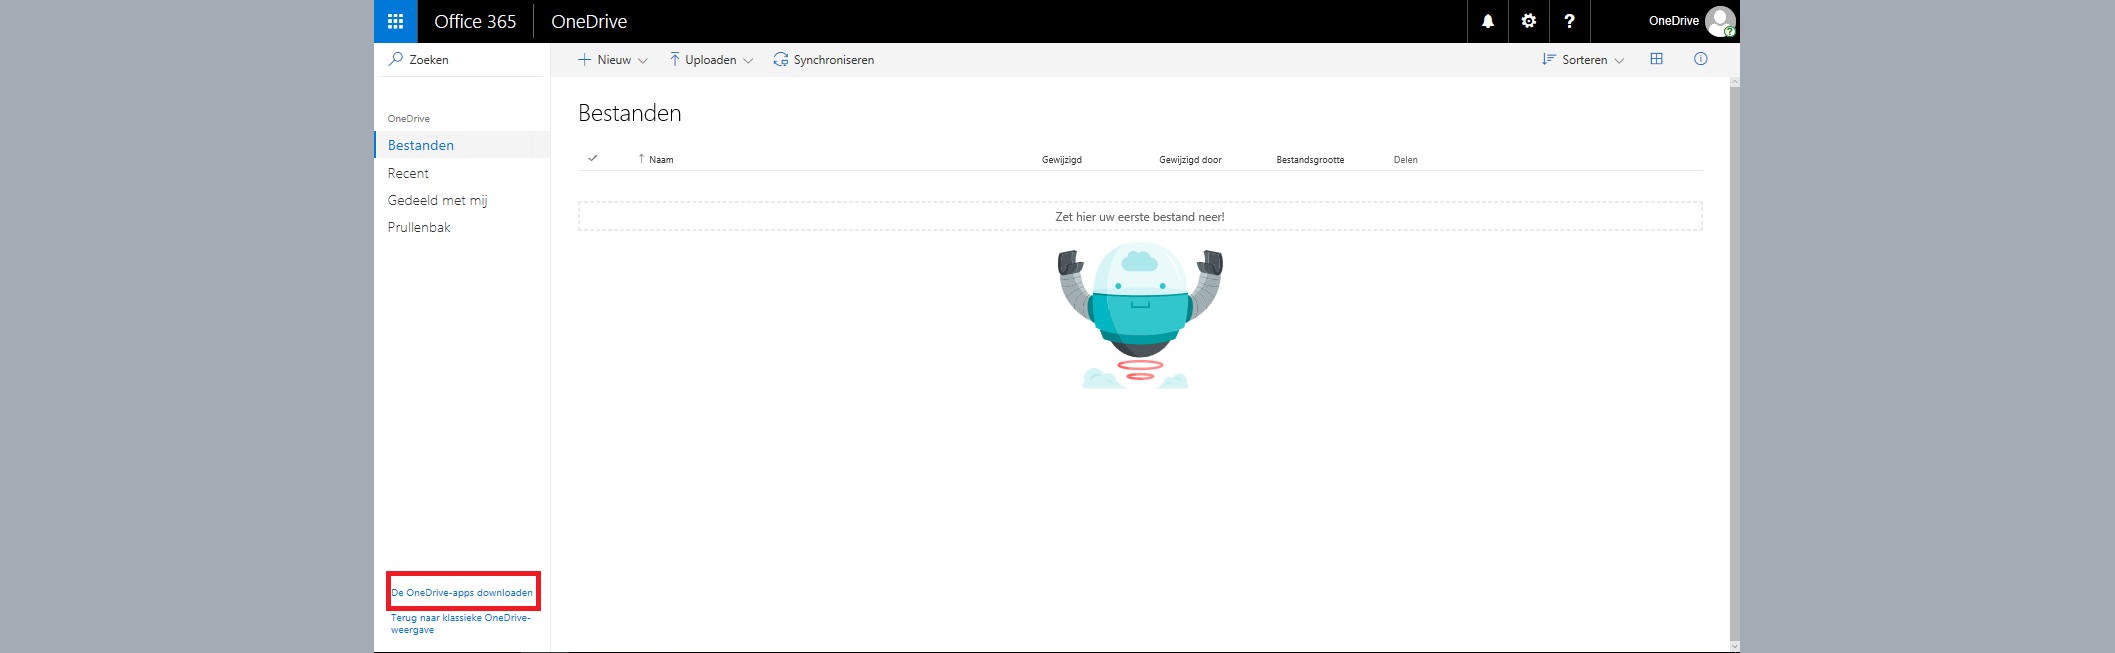 onedrive apps downloaden